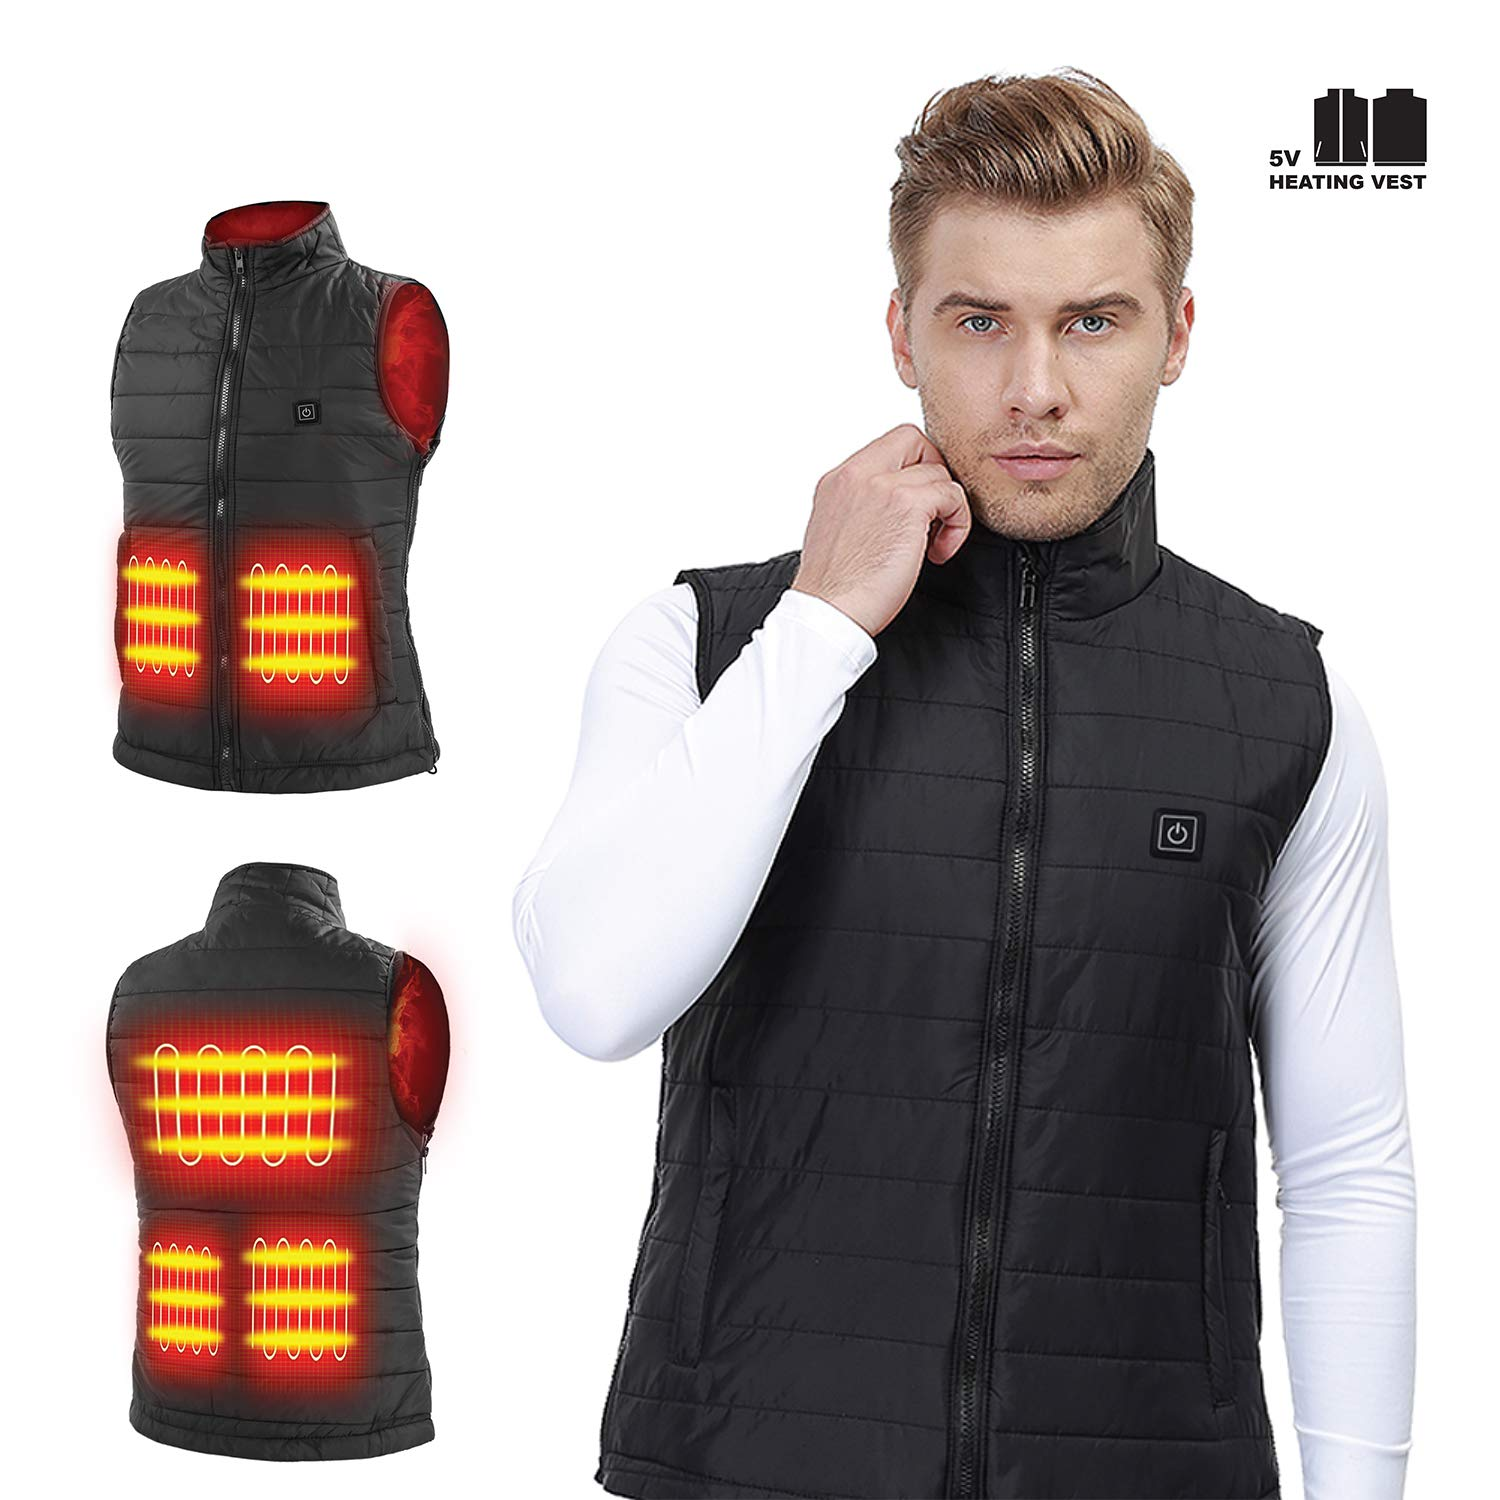 Heated USB Electric Puffer Vest Heating Jacket Cold-Proof Warm Clothes Washable More Sizes Adjustment (Battery Not Included)